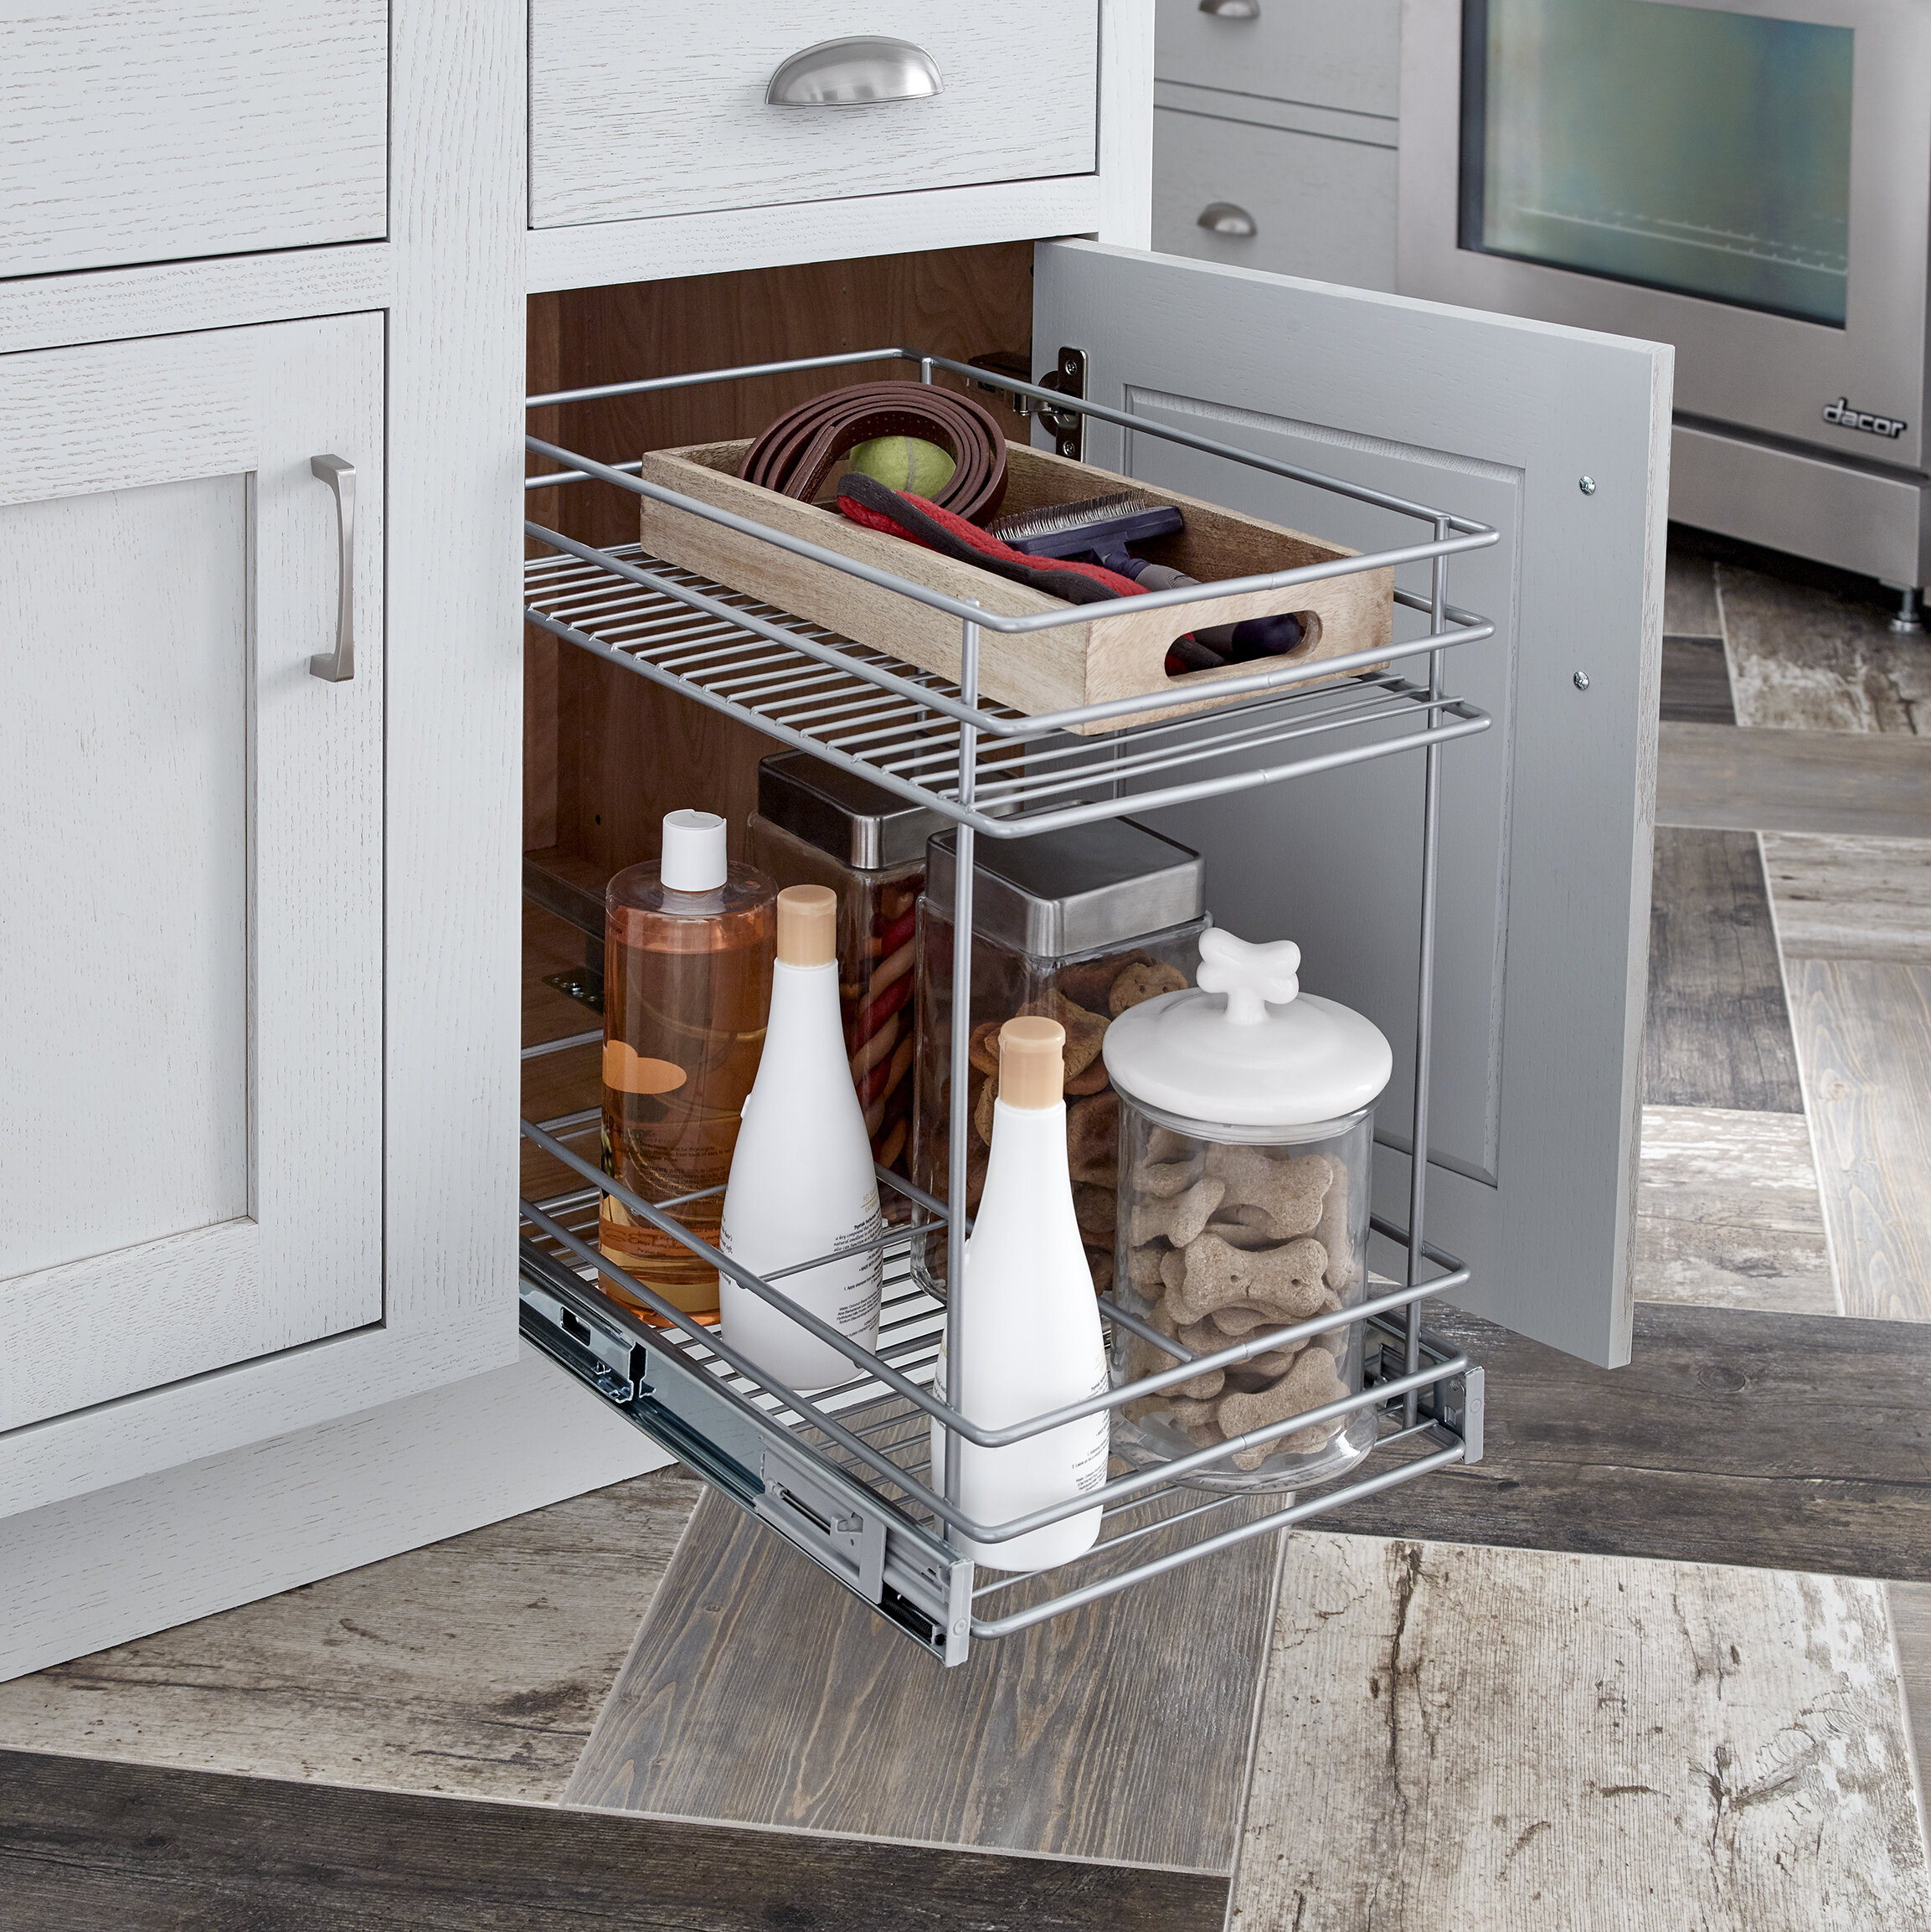 ClosetMaid 2 Tier Kitchen Cabinet Pull Out Basket & Reviews